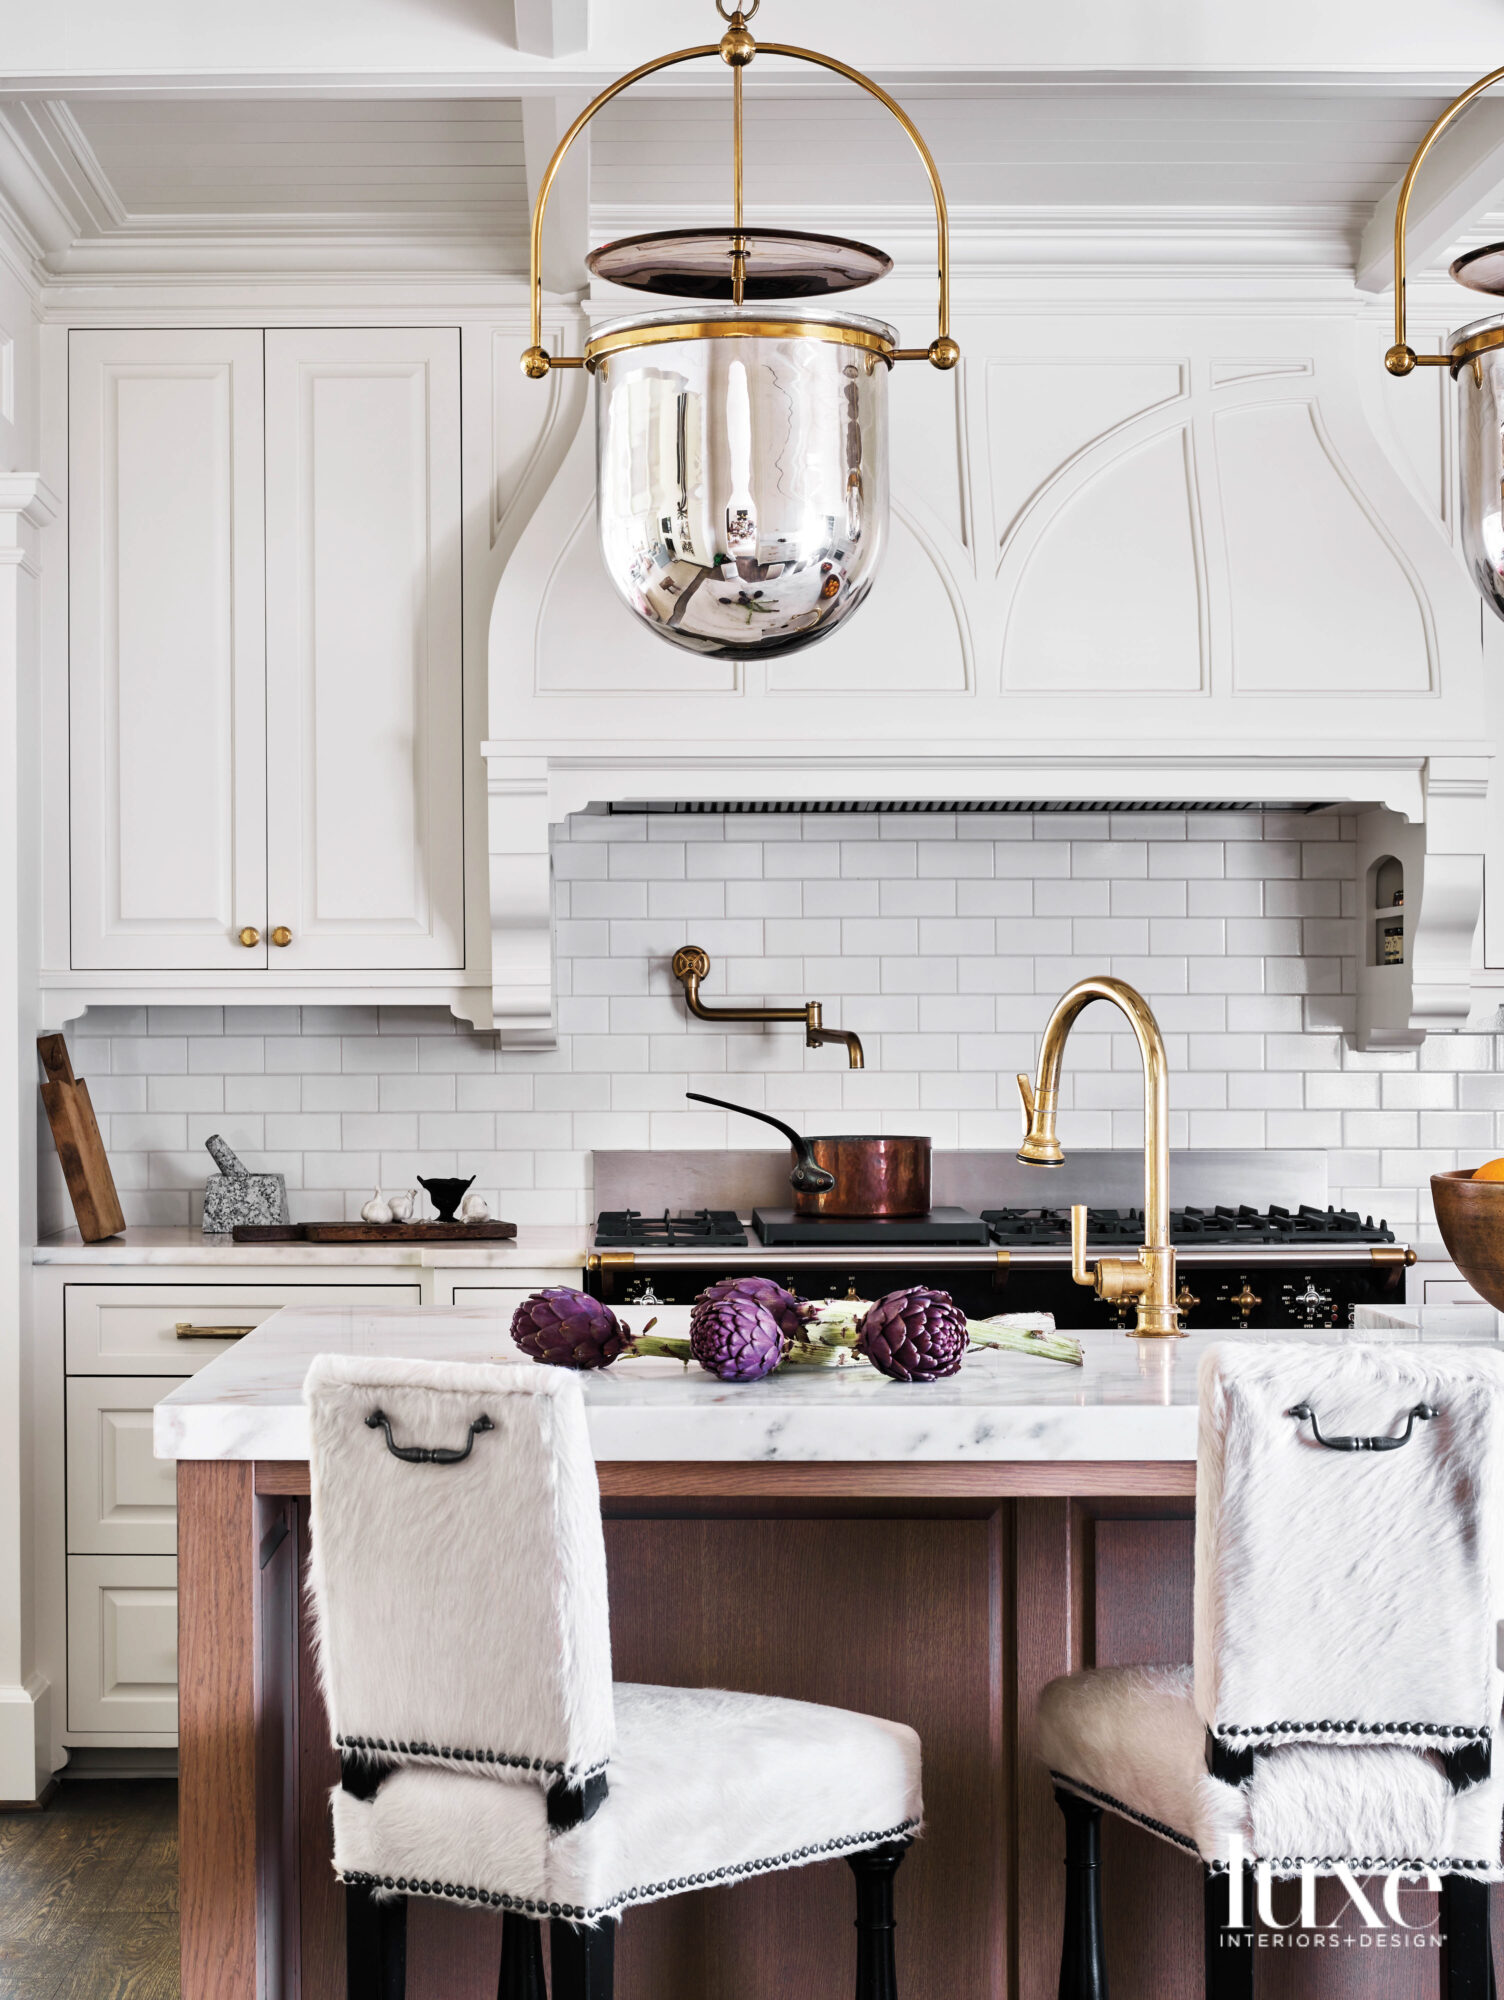 Classic kitchen with white subway tile backsplash, mohair-covered counter stools and mercury glass bell jar ceiling pendants